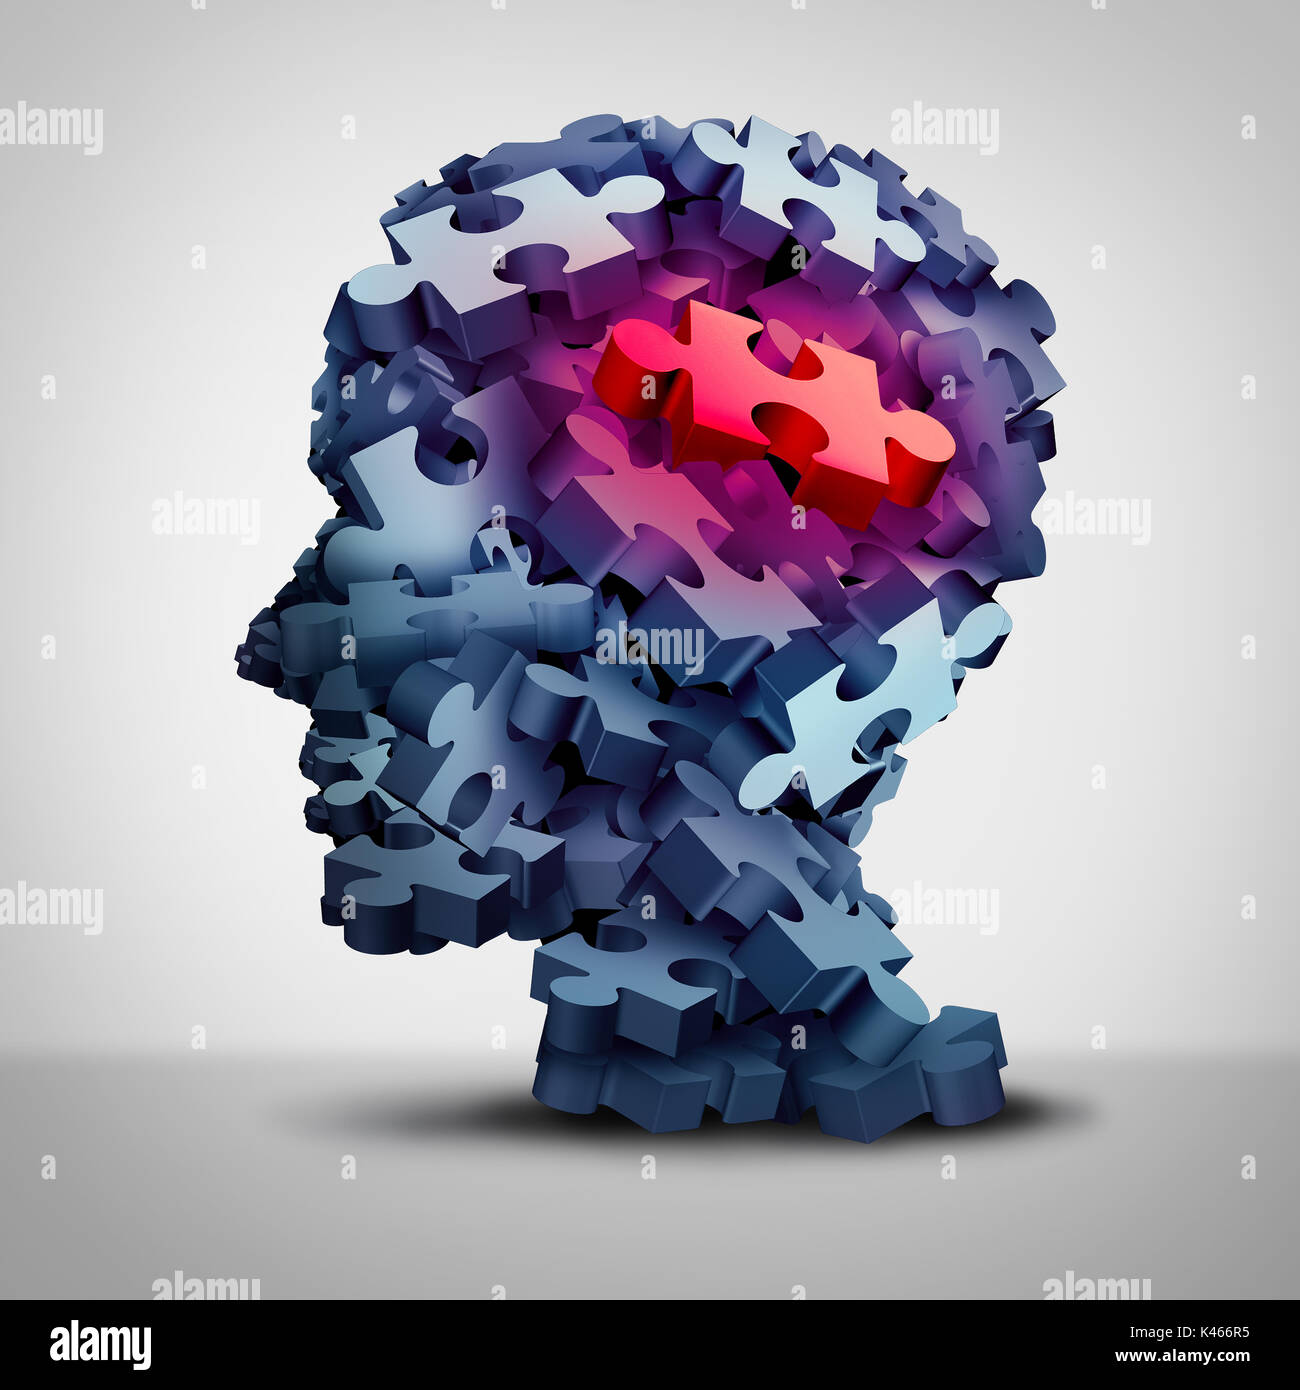 Psychiatric patient symbol and psychiatry services or psychological mental therapy concept with a group of jigsaw puzzle pieces shaped as a human. - Stock Image